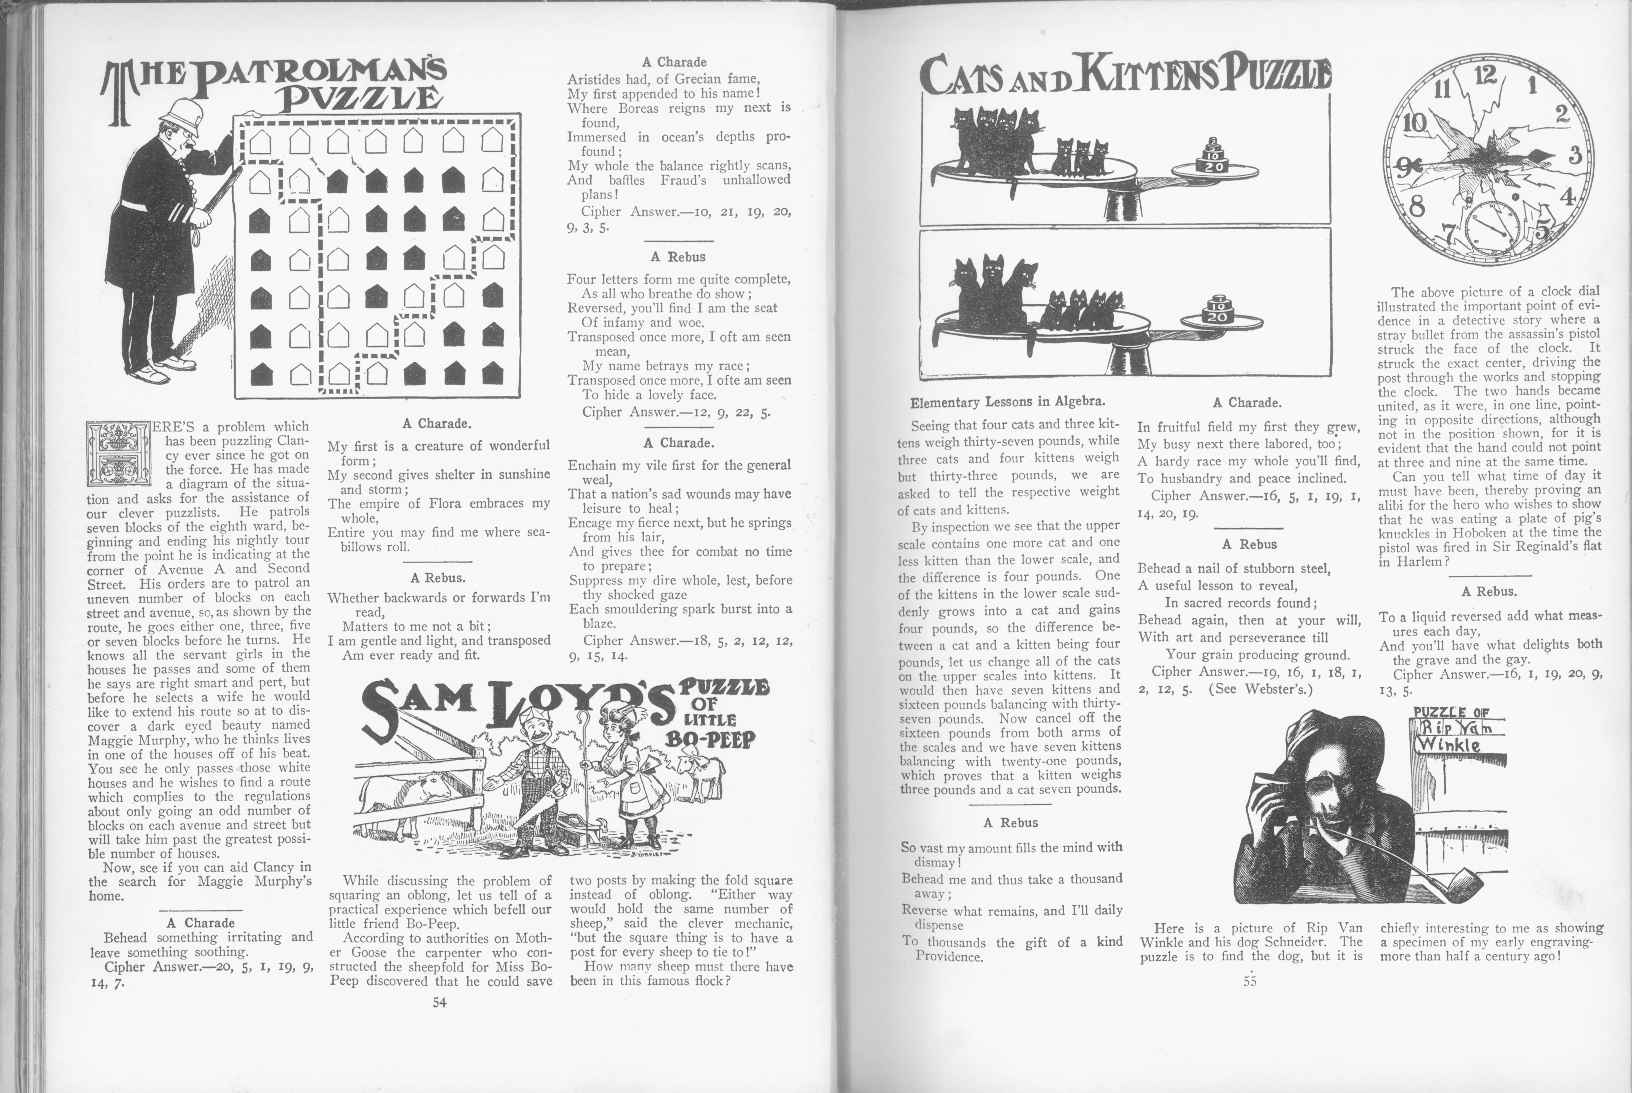 Sam Loyd - Cyclopedia of Puzzles - page 54-55